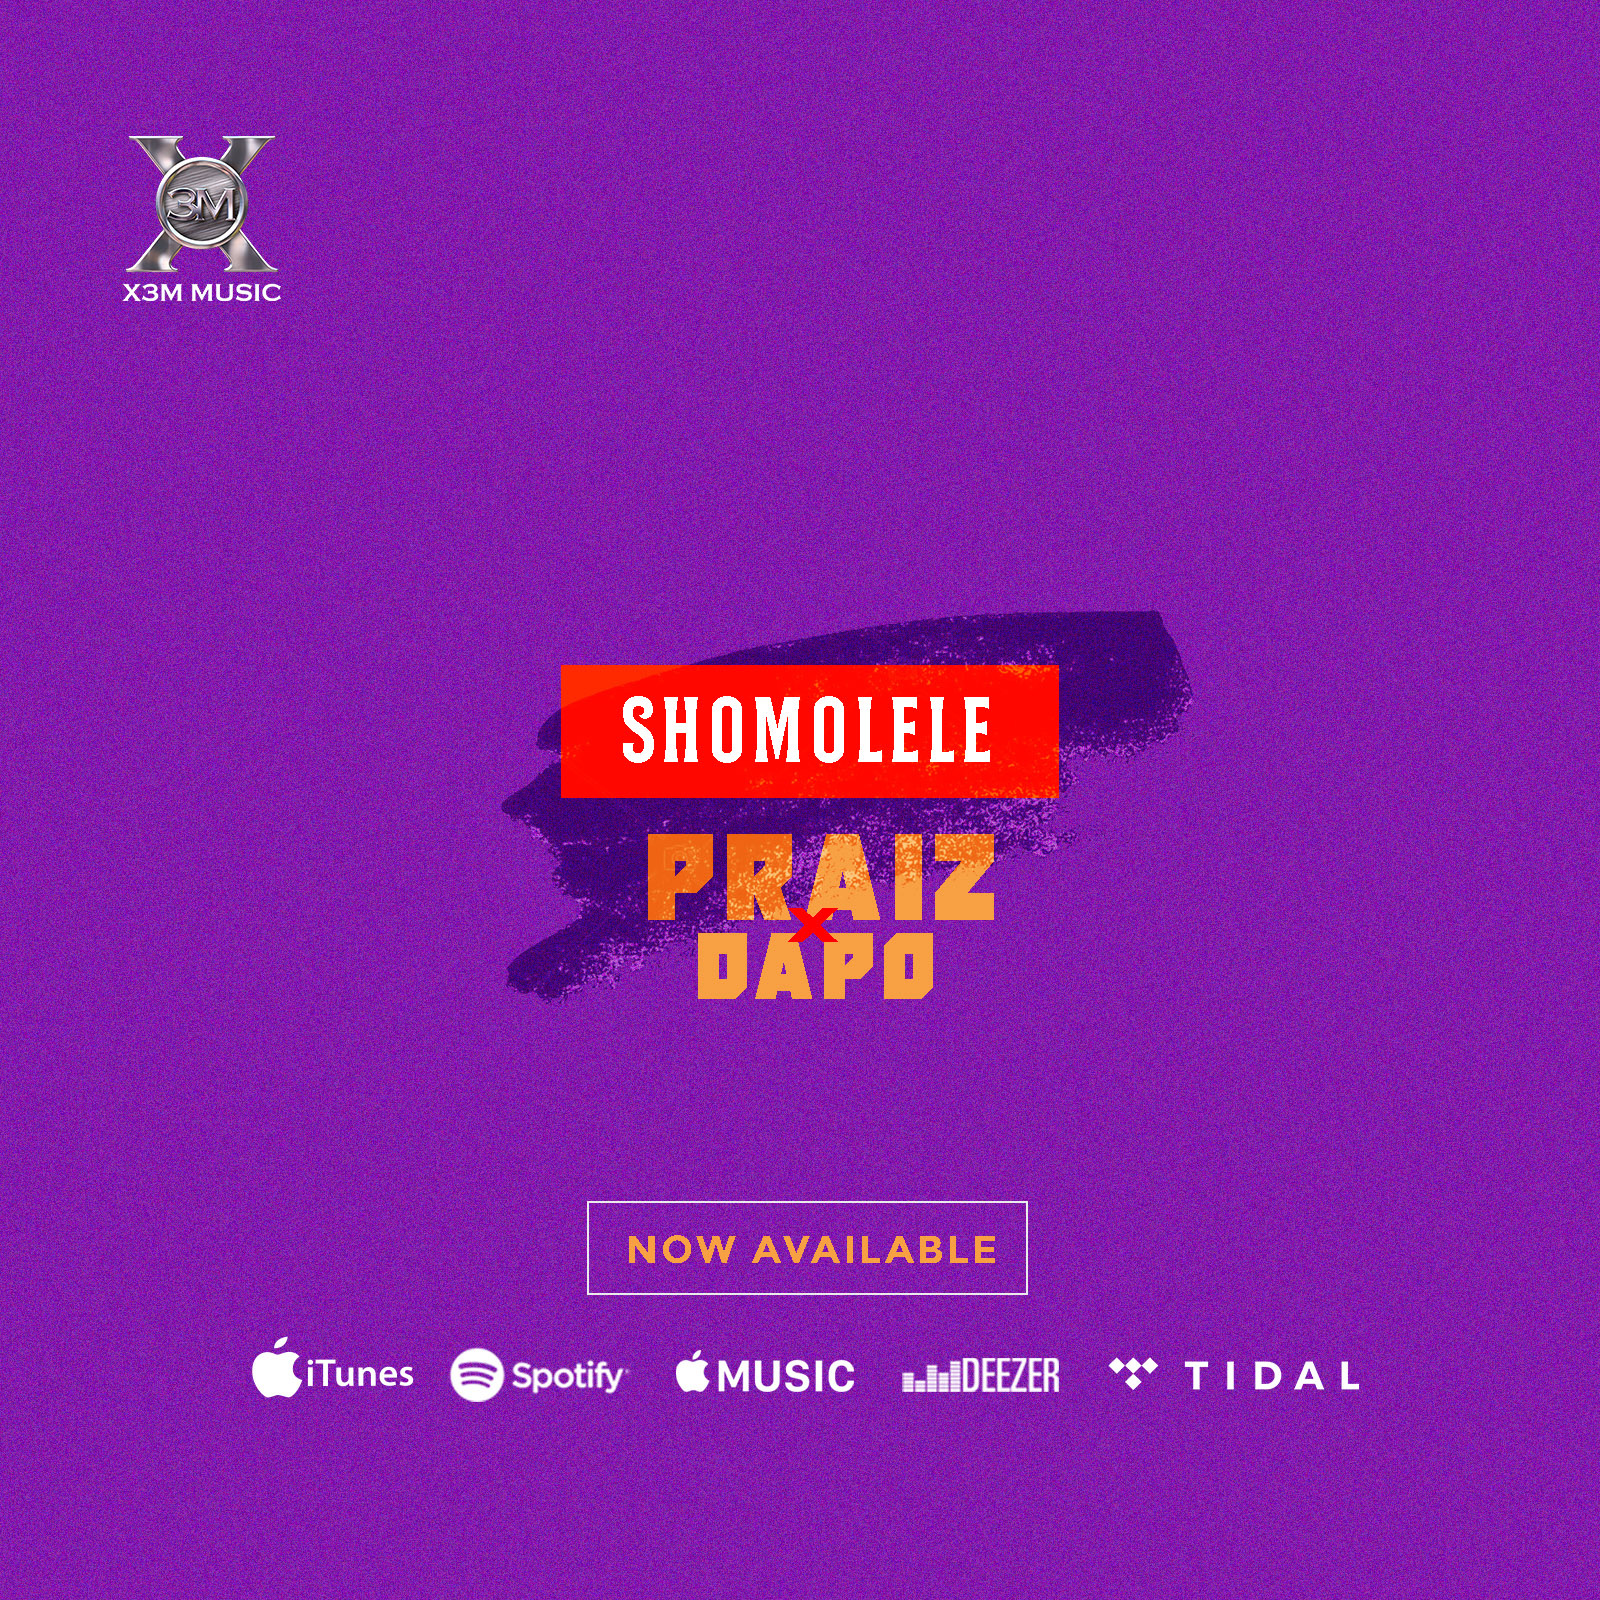 VIDEO: Praiz – Shomolele ft. Dapo